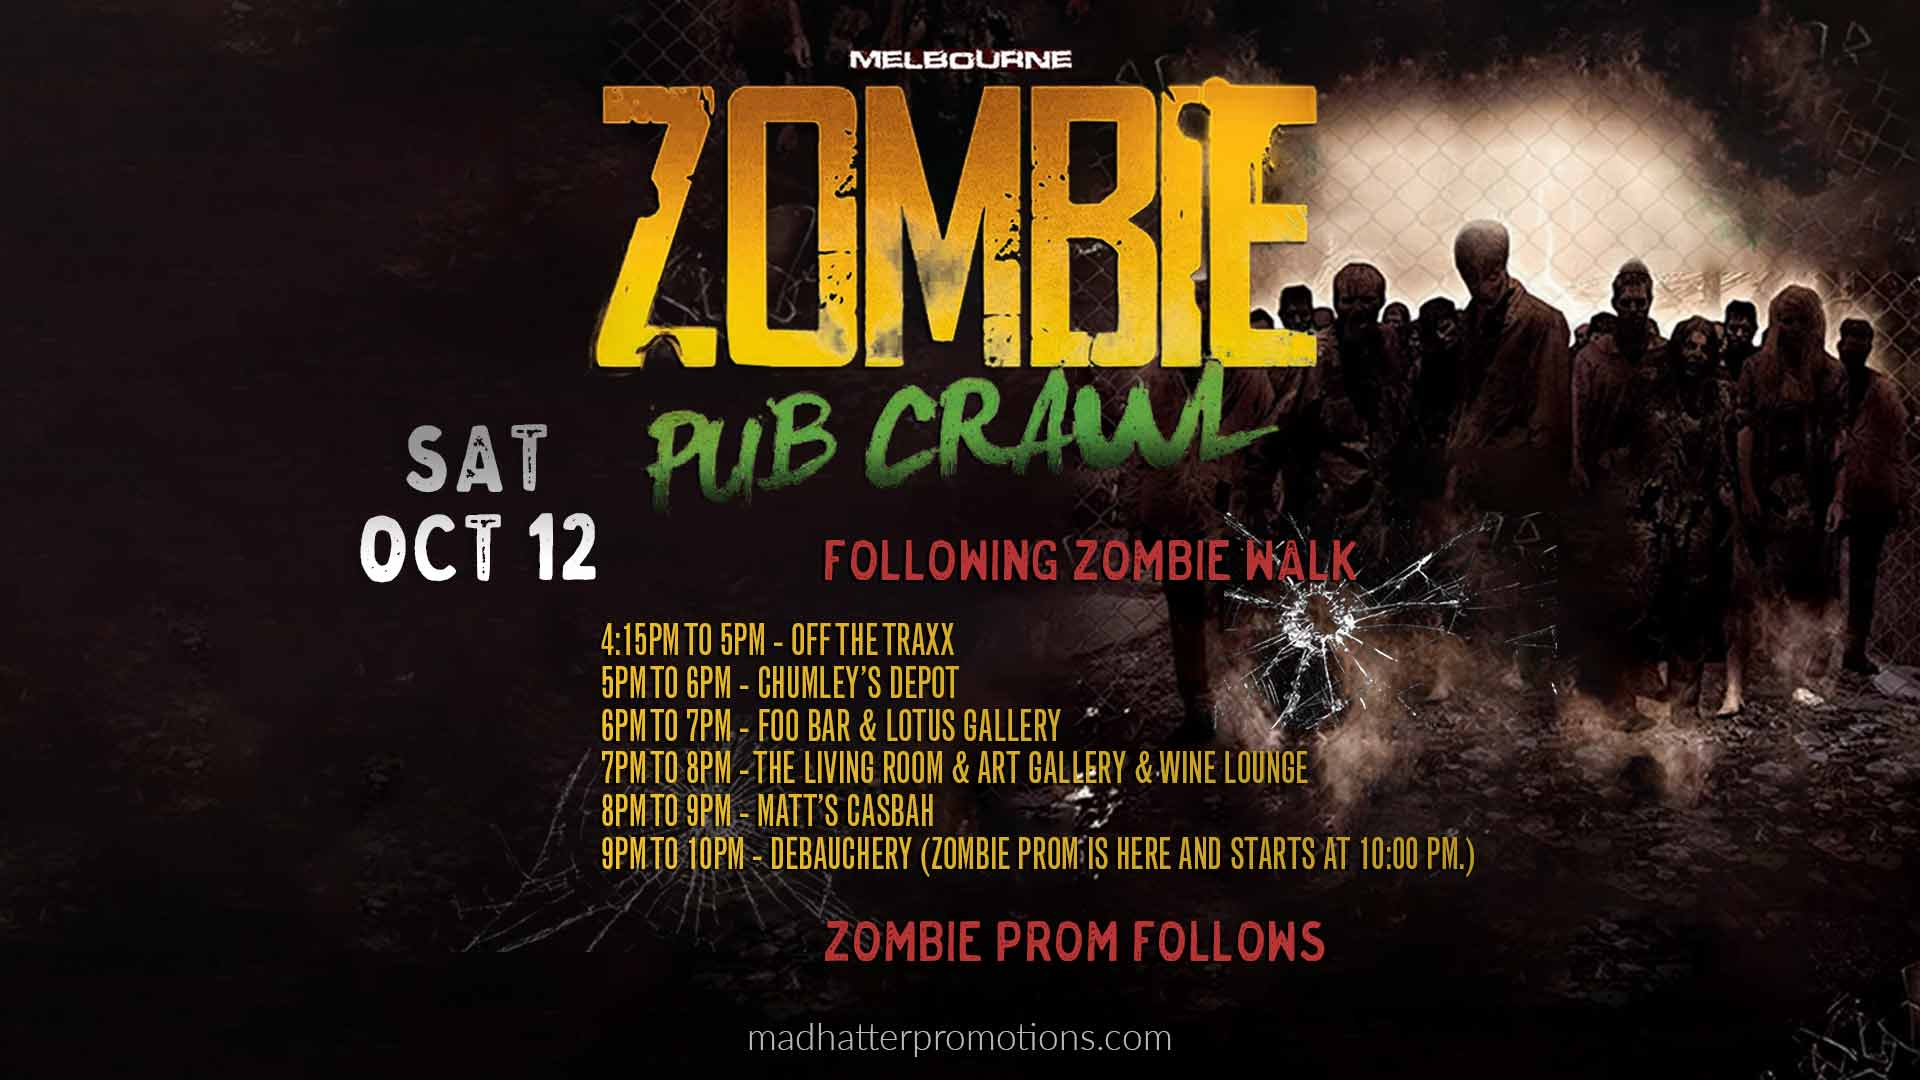 2019 Zombie Halloween Pub Crawl and Prom Downtown Melbourne